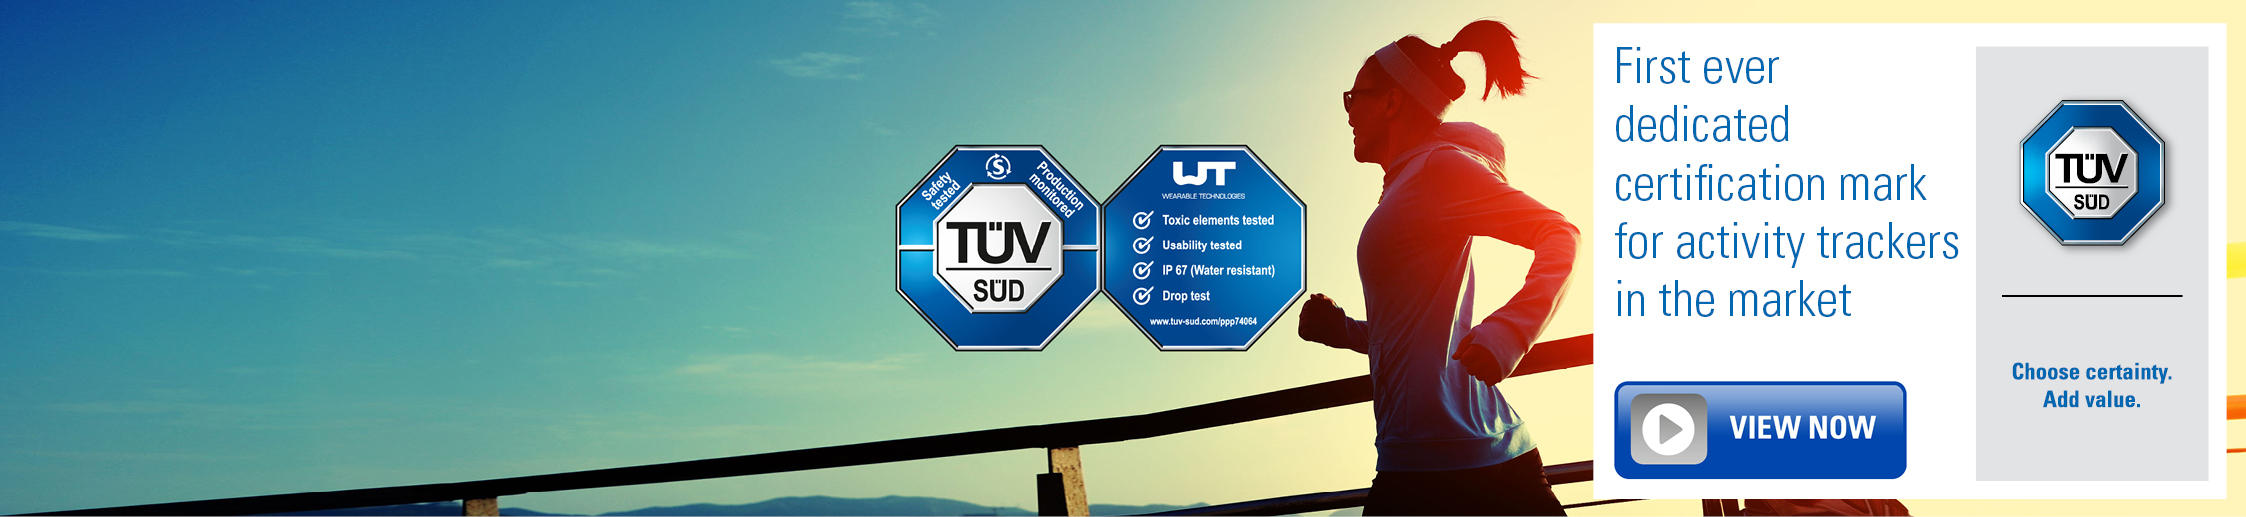 http://www.tuv-sud.com/activity/testing/wearable-technology-wearable-device-testing-and-certification